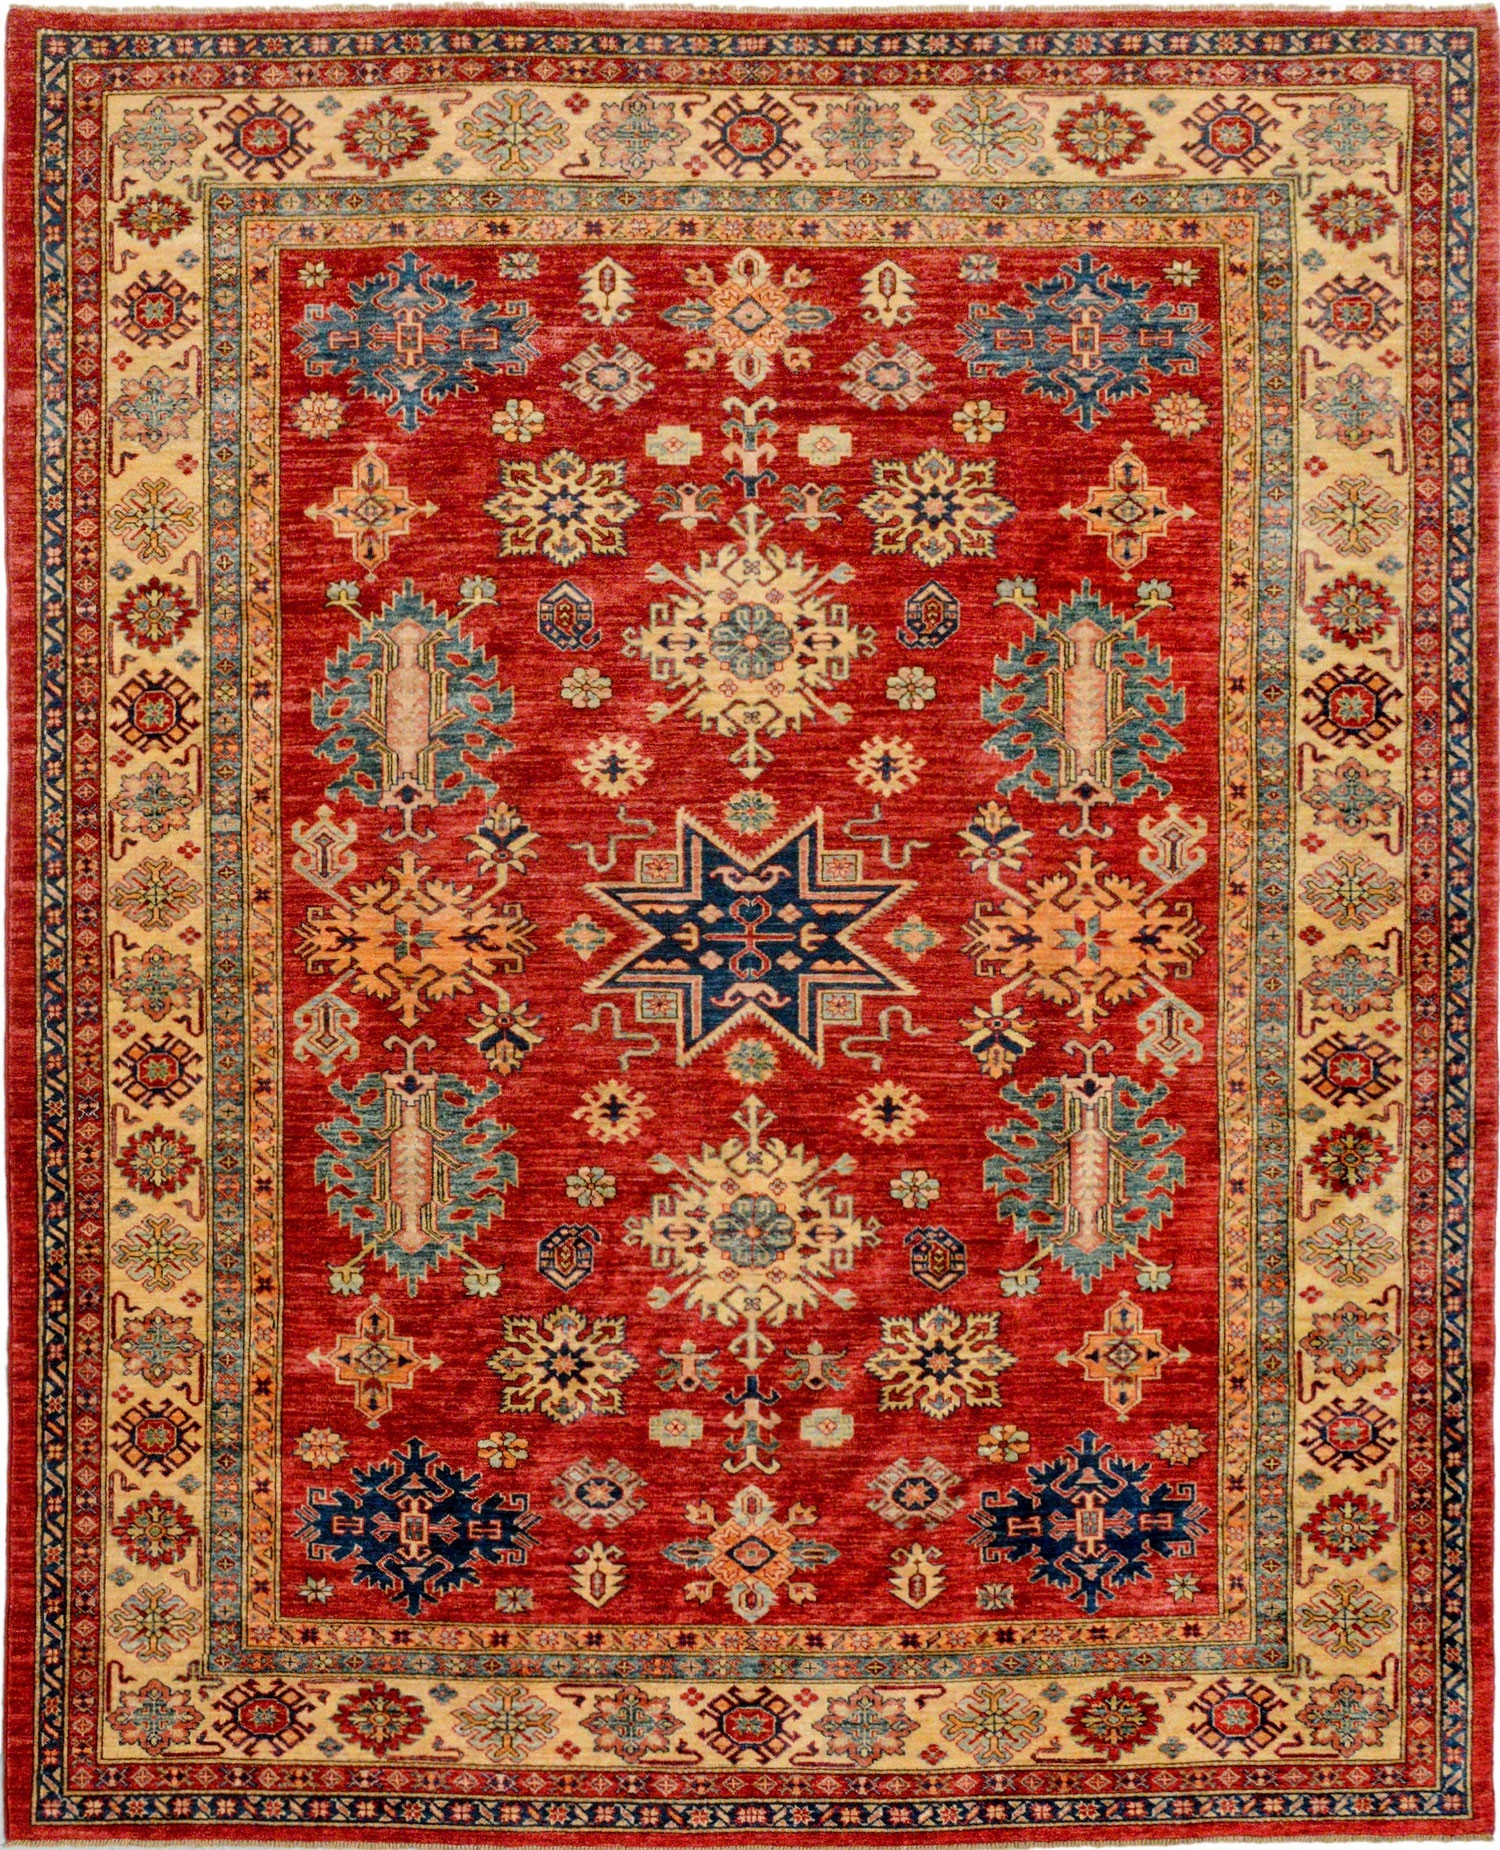 Butterfly 7 11 X 9 11 Ft No 27901 Oriental With Afghan Rug Types (Image 9 of 15)